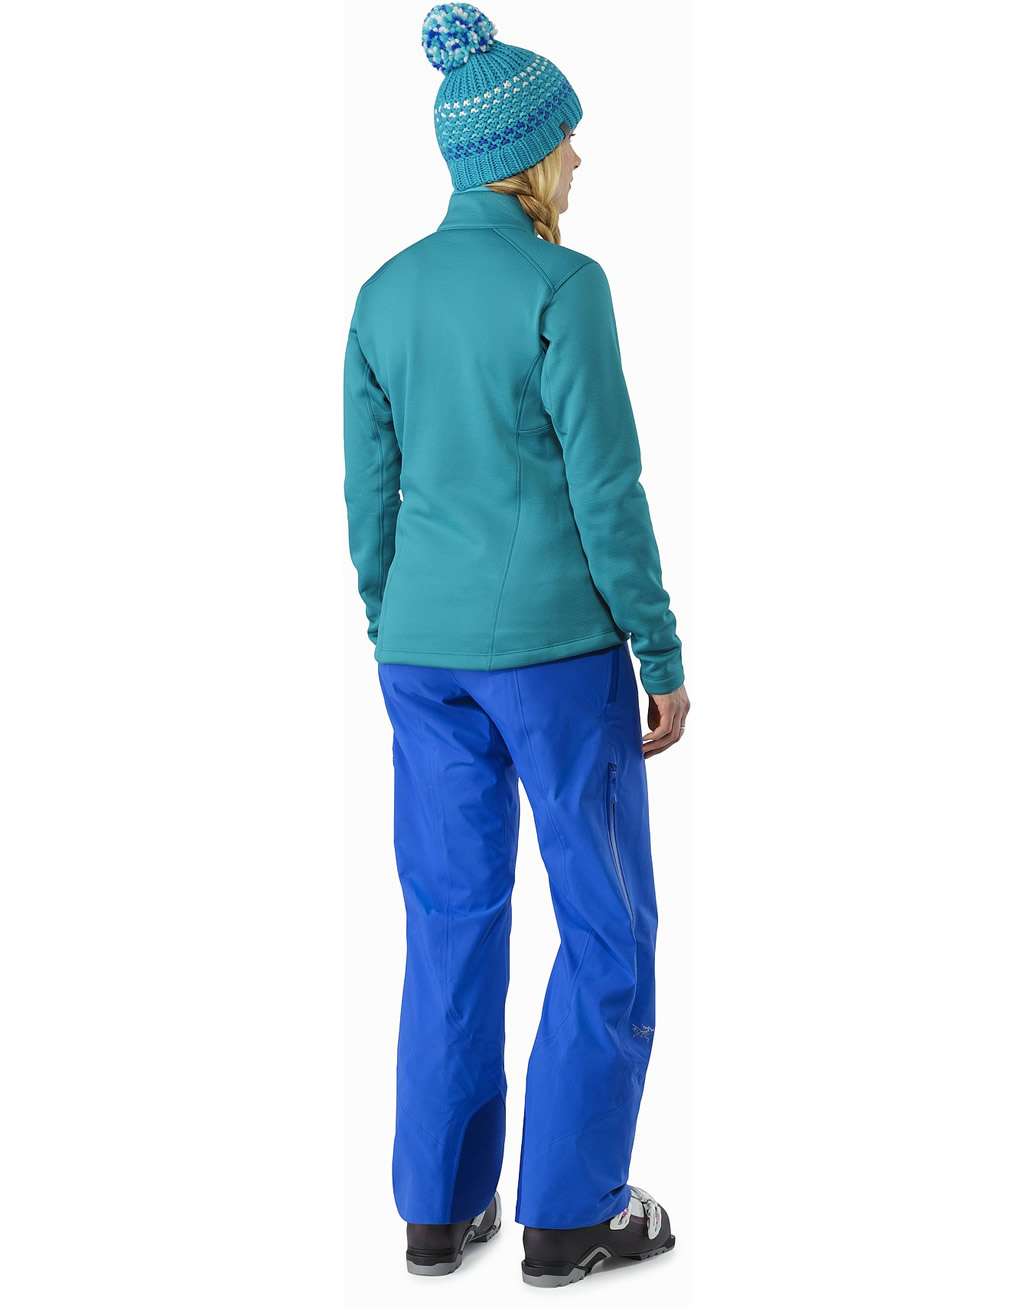 Blue Stingray Pant for Women's by Arc'teryx, Back